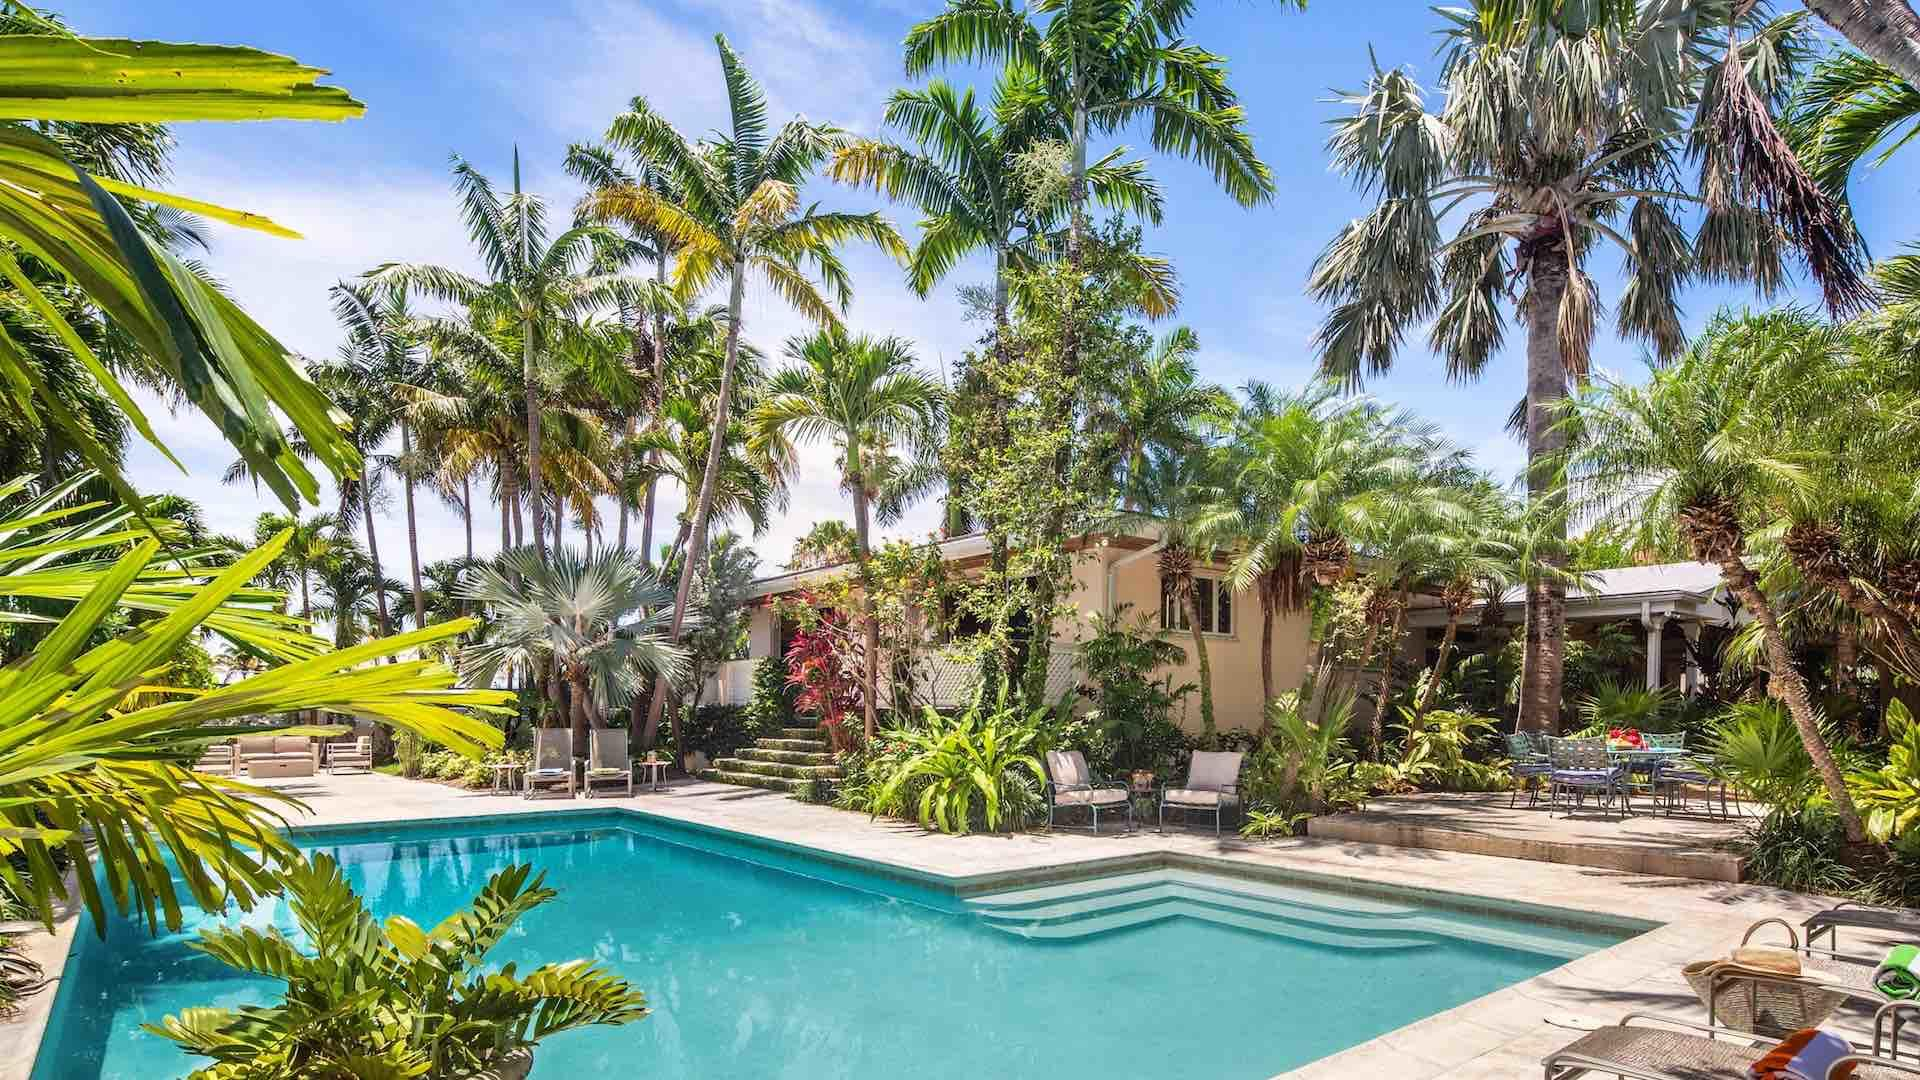 Large patio and pool area in this 5 bedroom Key West vacation home steps to the beach